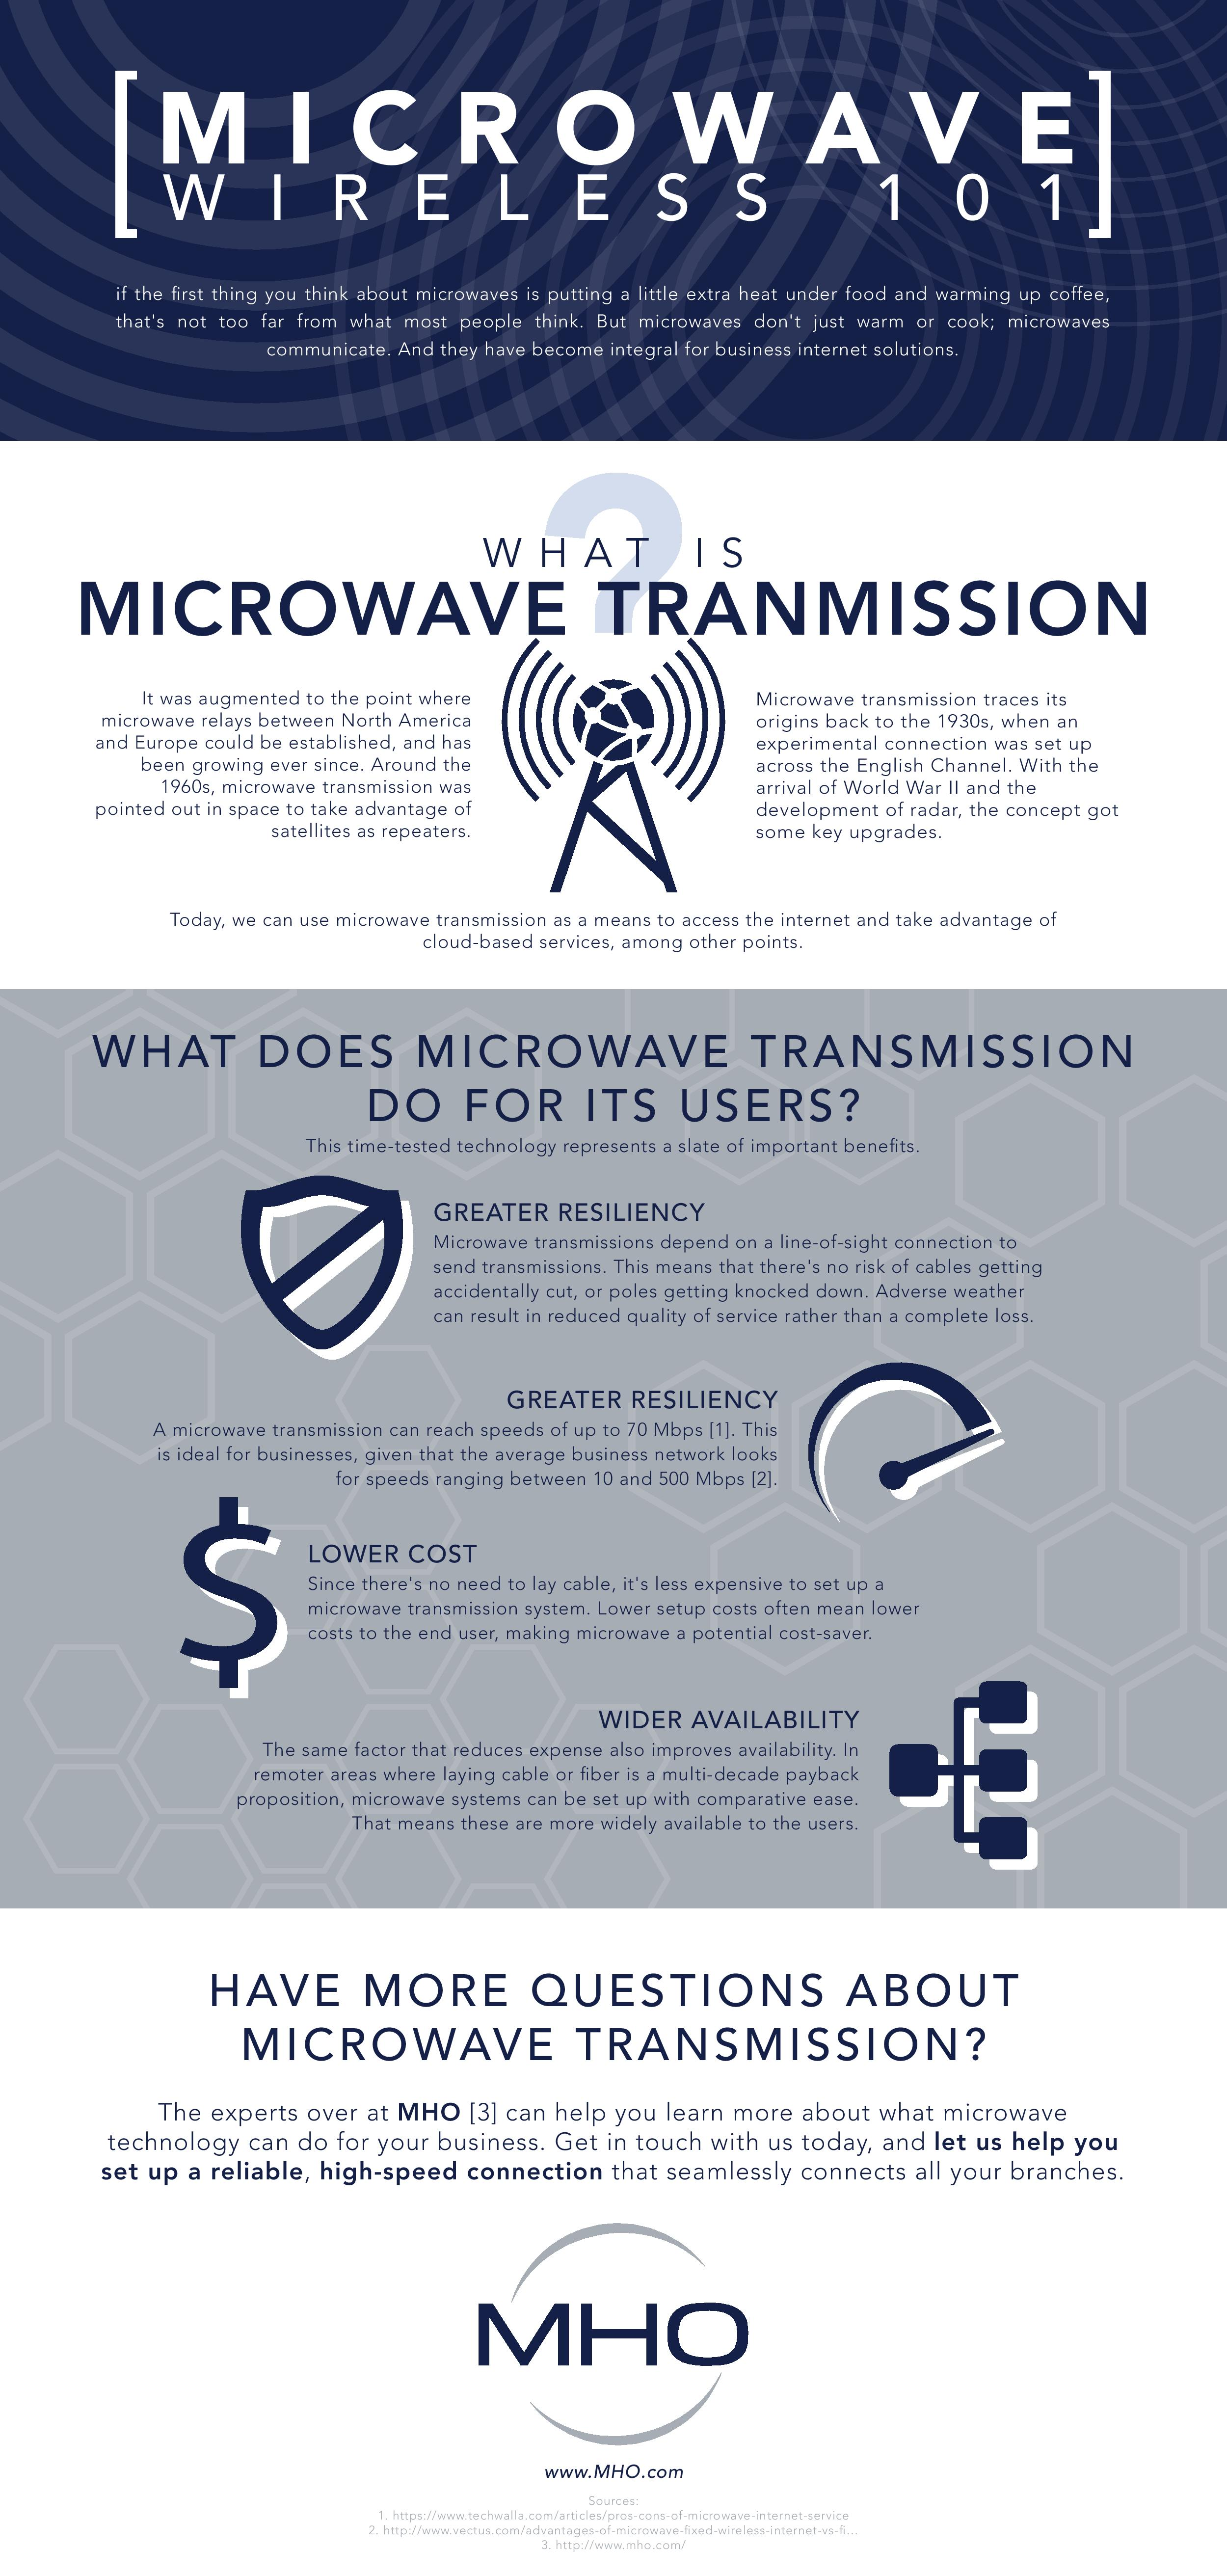 MHO_Microwave_Transmission_August_Infographic-page-001.jpg